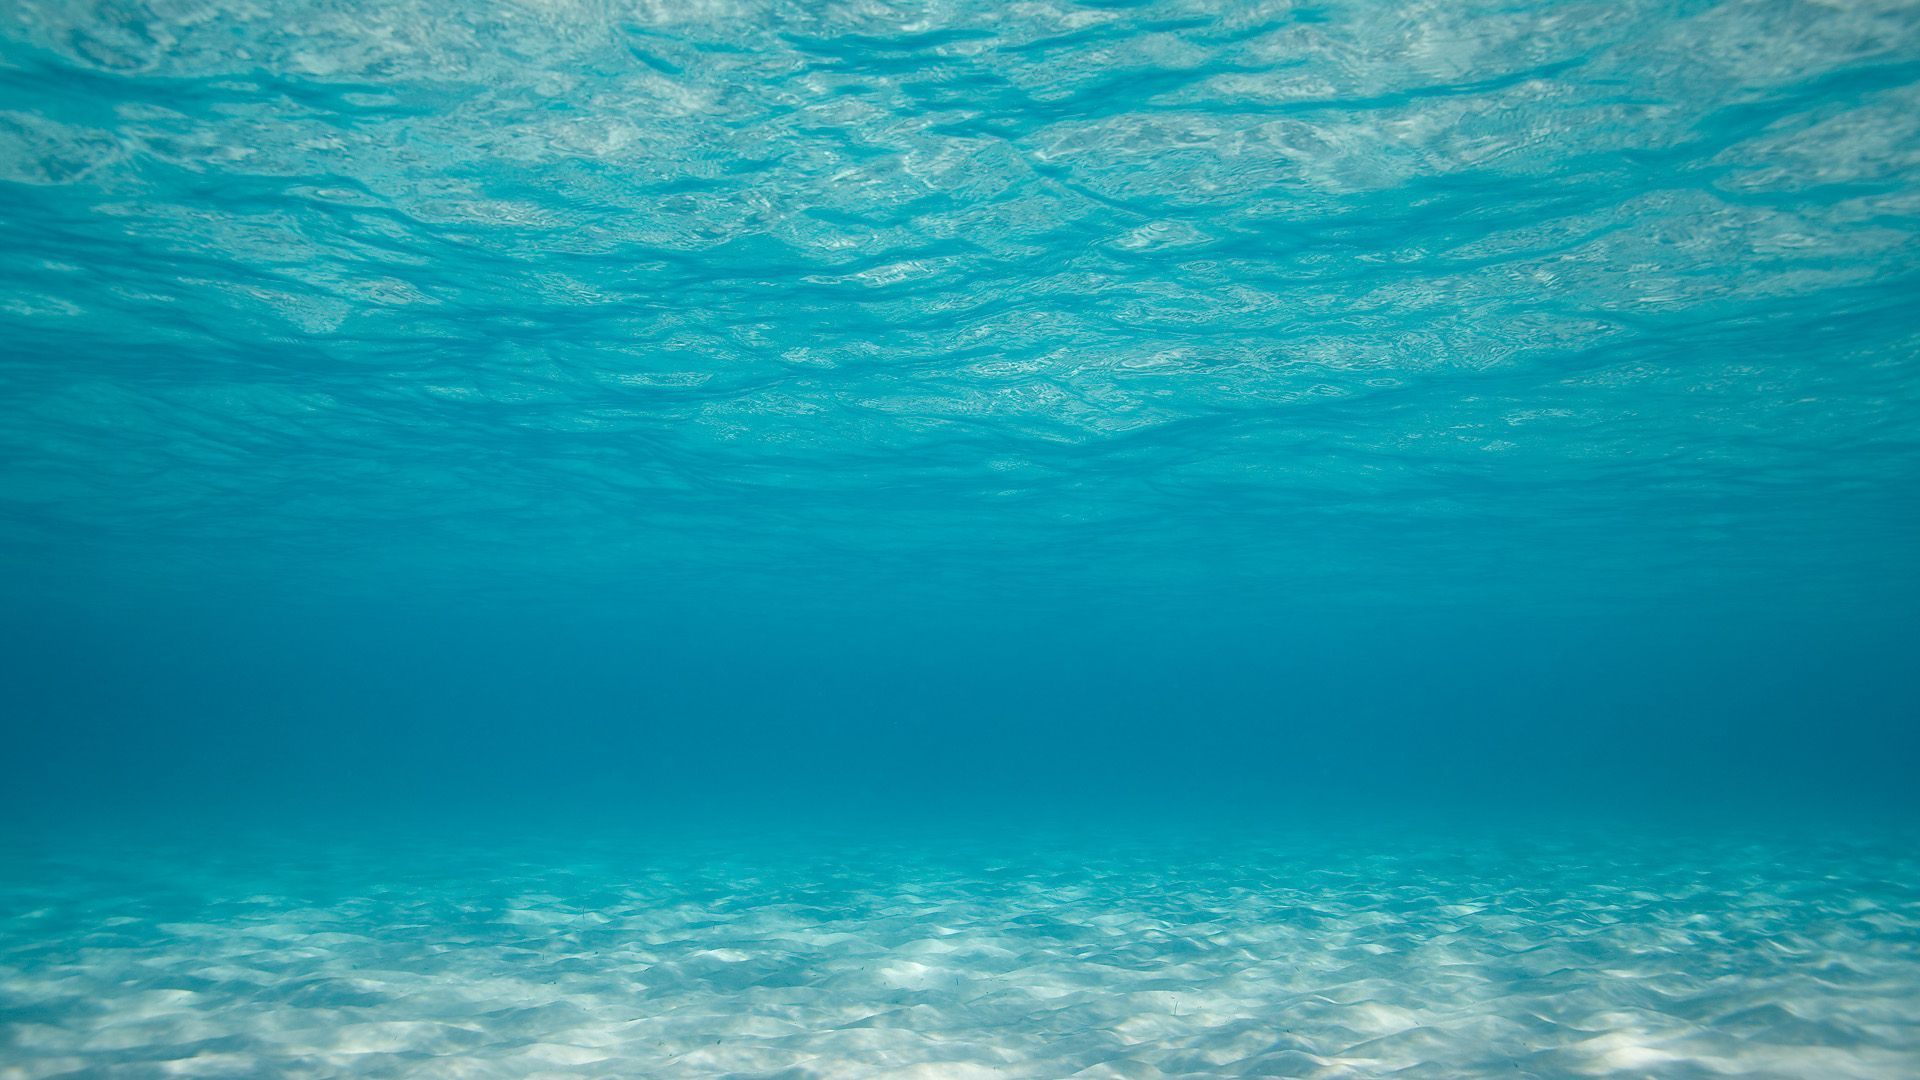 Under Water Wallpaper HD